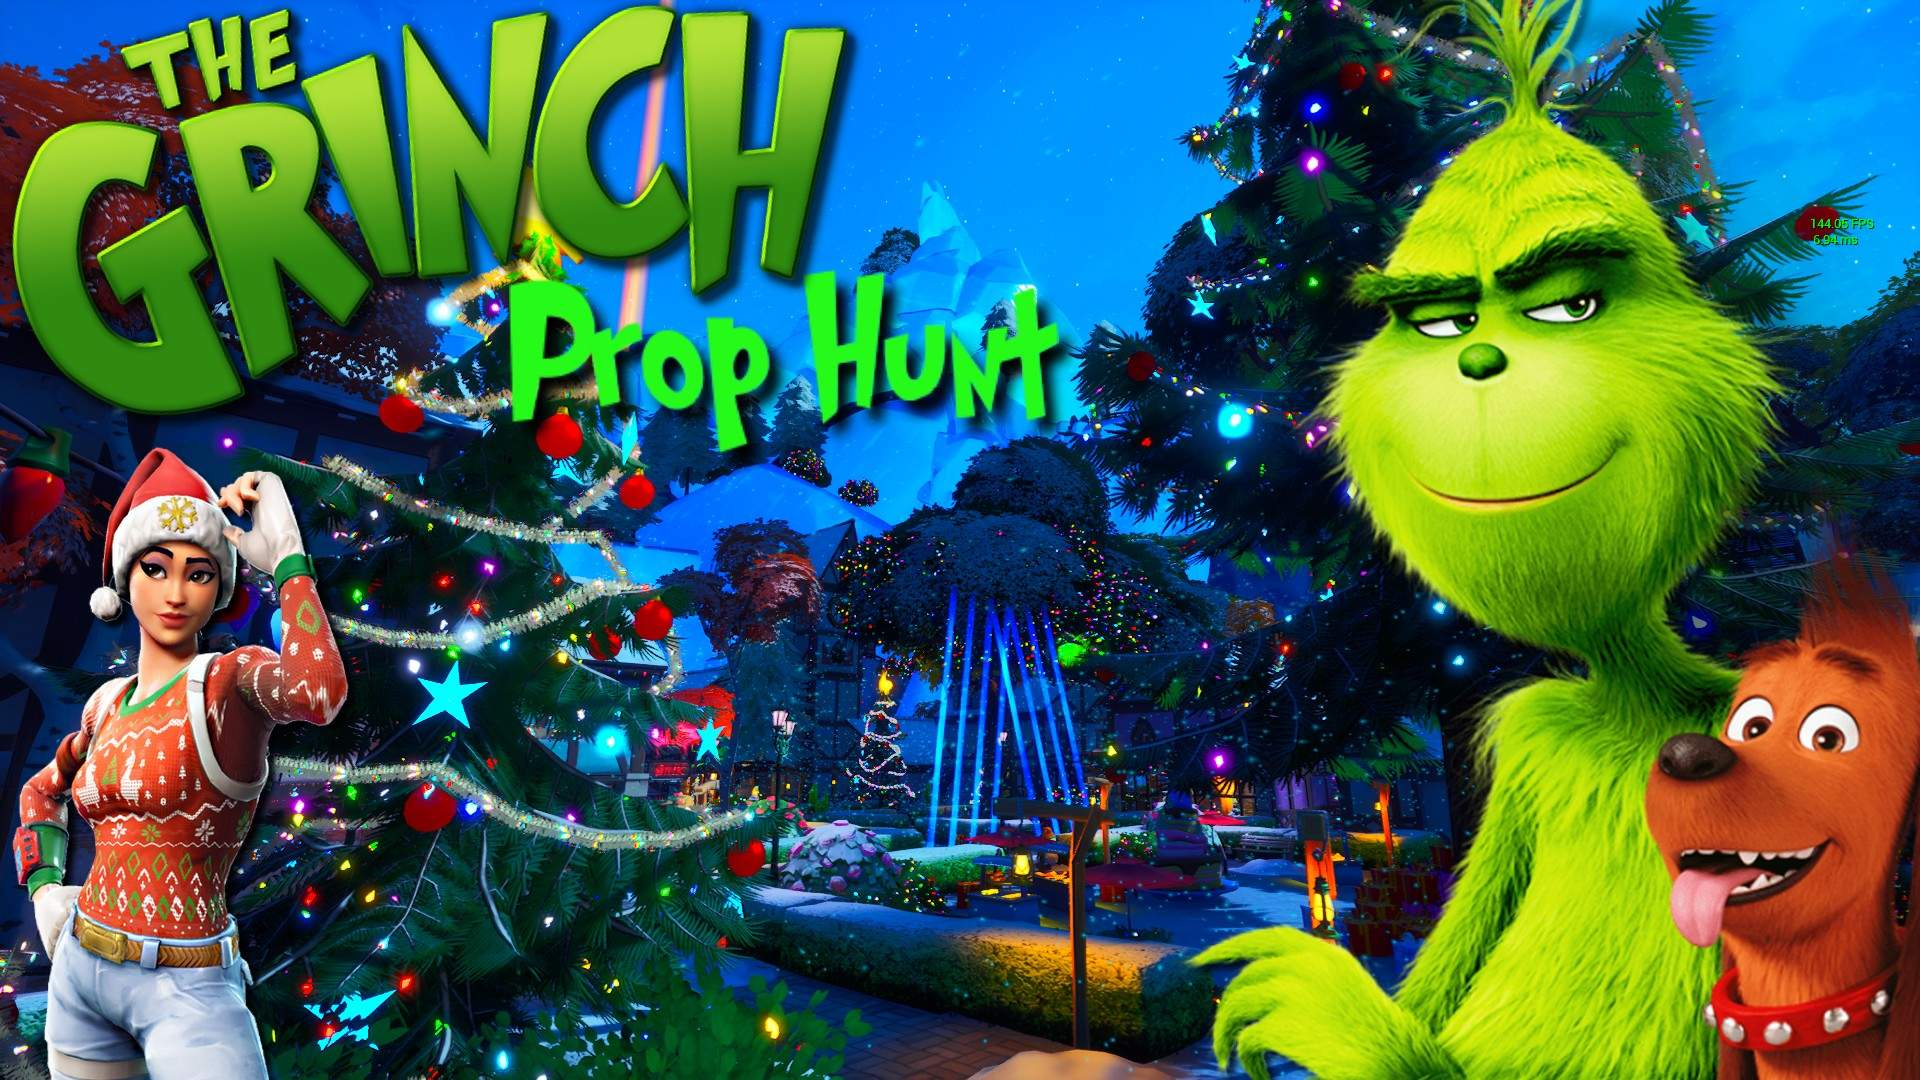 GRINCH -PROP HUNT